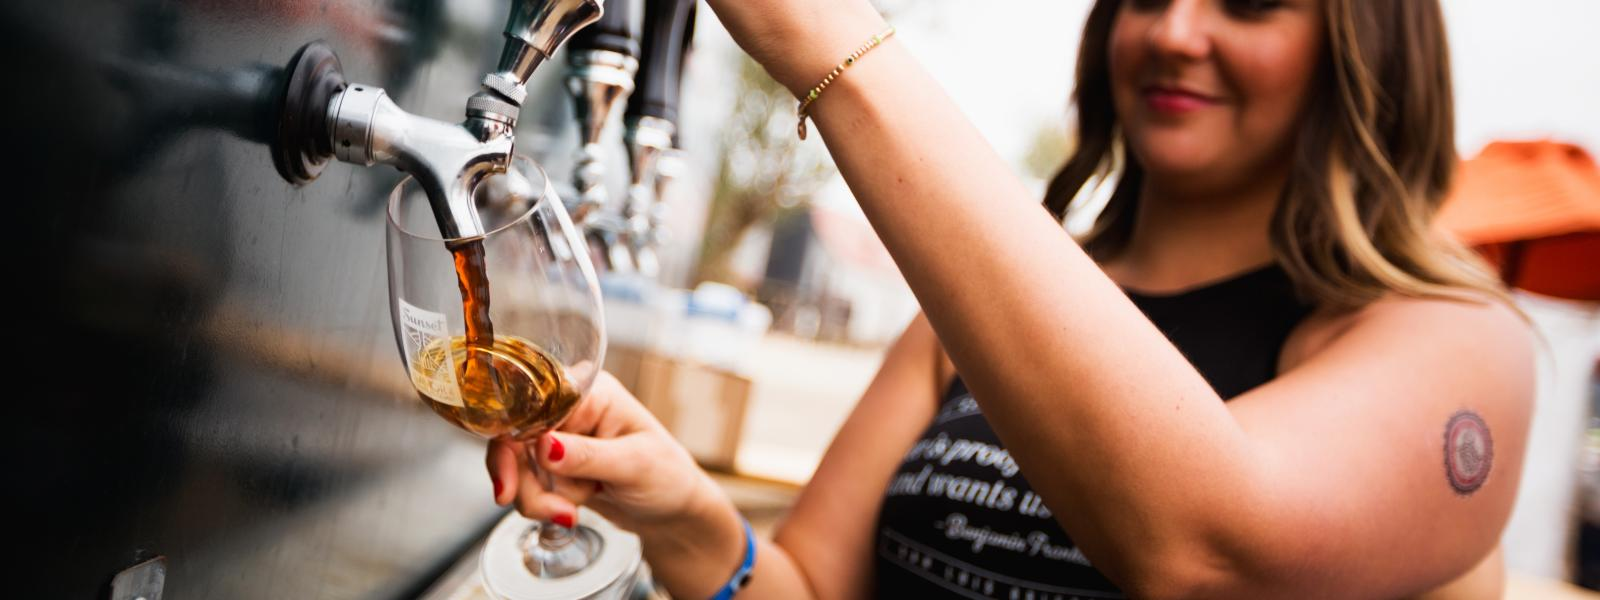 A woman pouring beer from a tap into a glass at SLO Cal bar